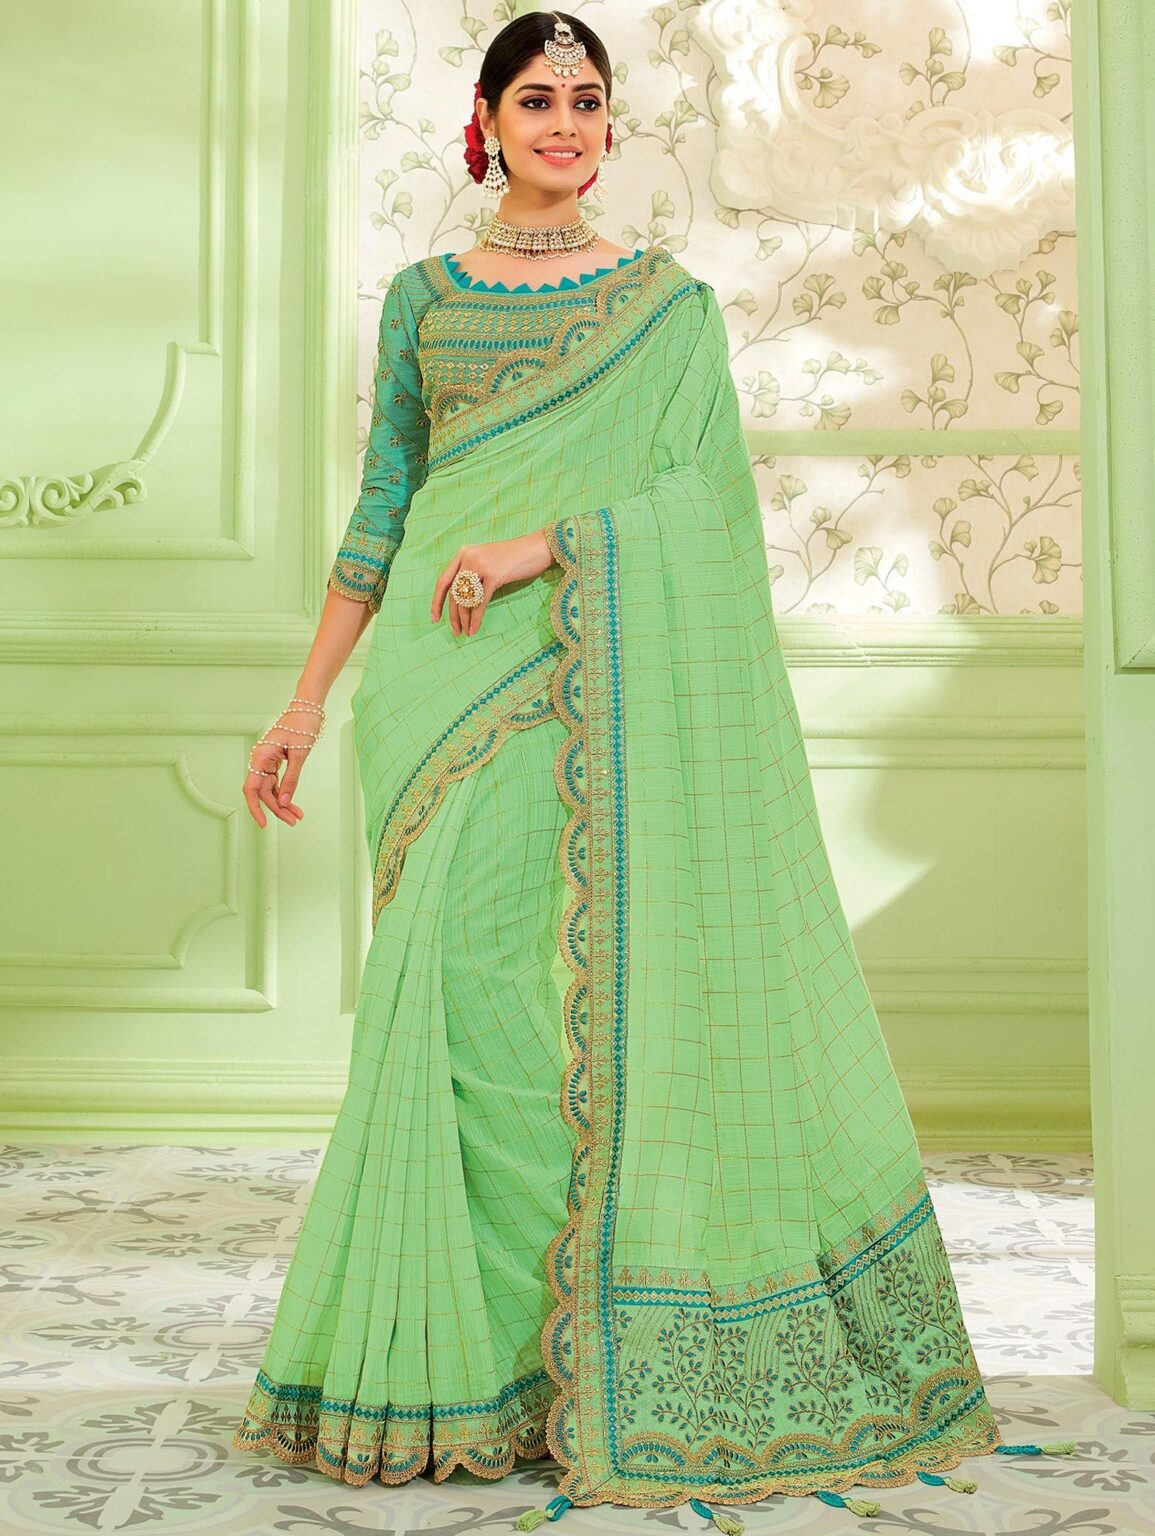 Light Green Silk Designer Checks Saree with Embroidered Cutworked Border